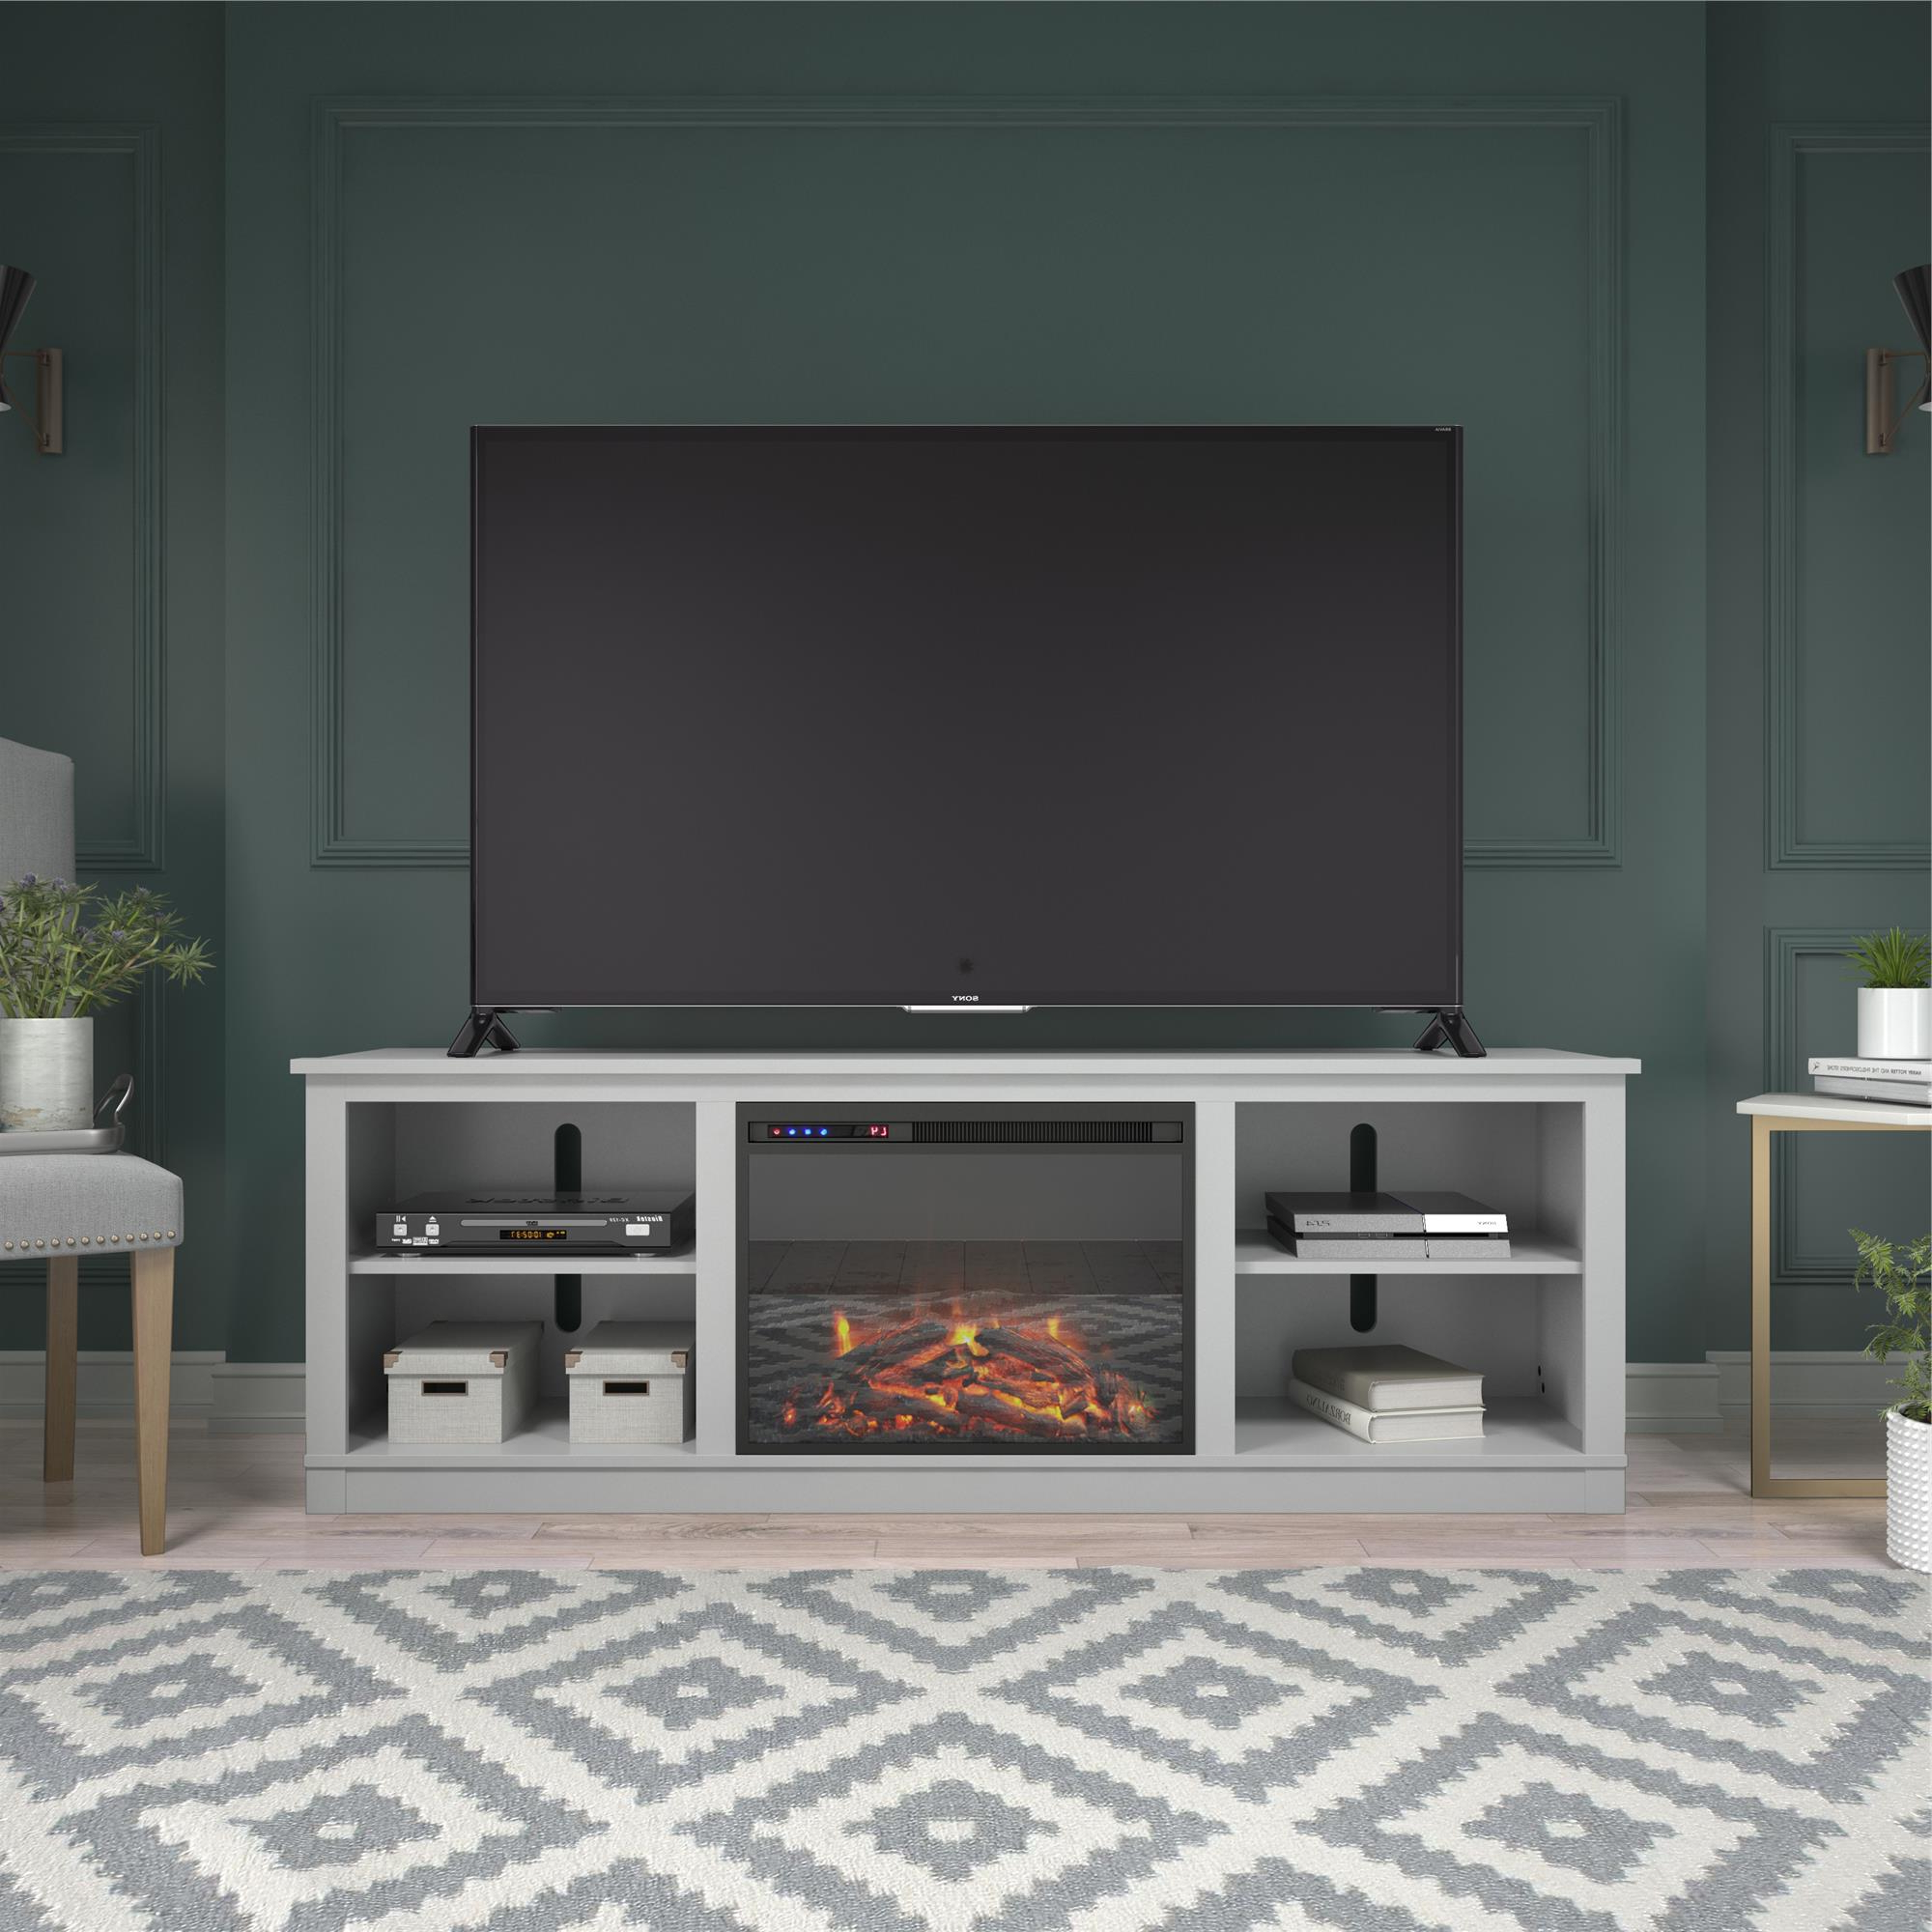 """2020 Ameriwood Home Kahle Fireplace Tv Stand For Tvs Up To 75 Intended For Lucille Tv Stands For Tvs Up To 75"""" (View 5 of 20)"""